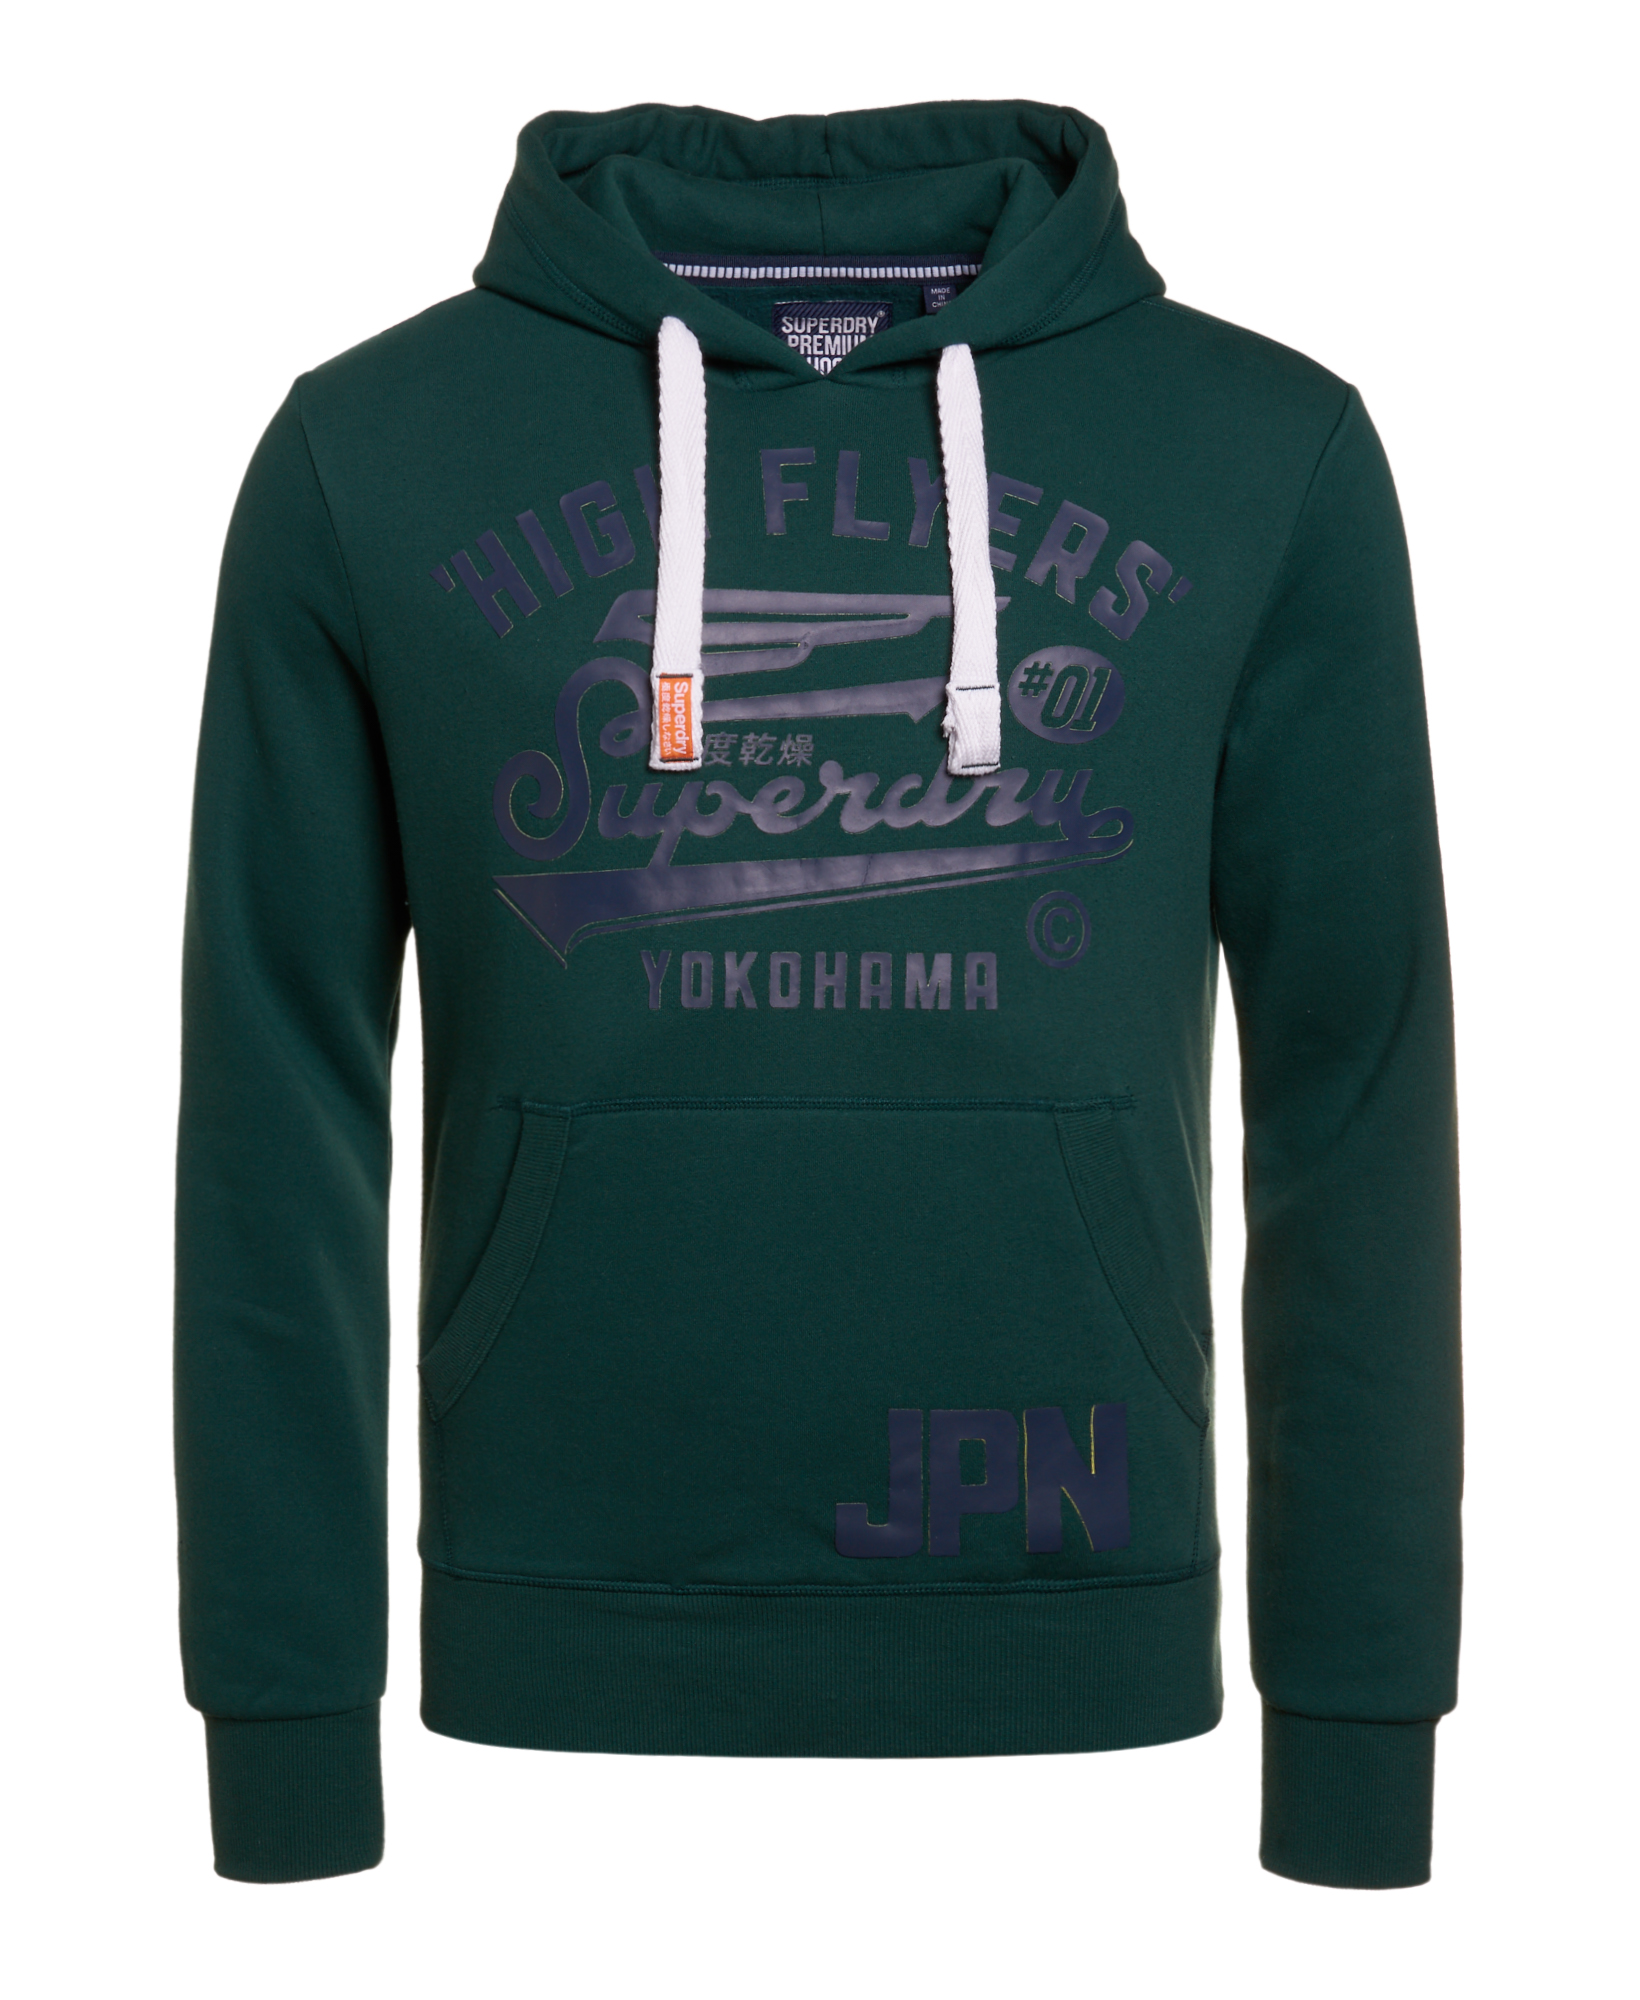 Details about Mens Superdry High Flyers Hoodie Spruce